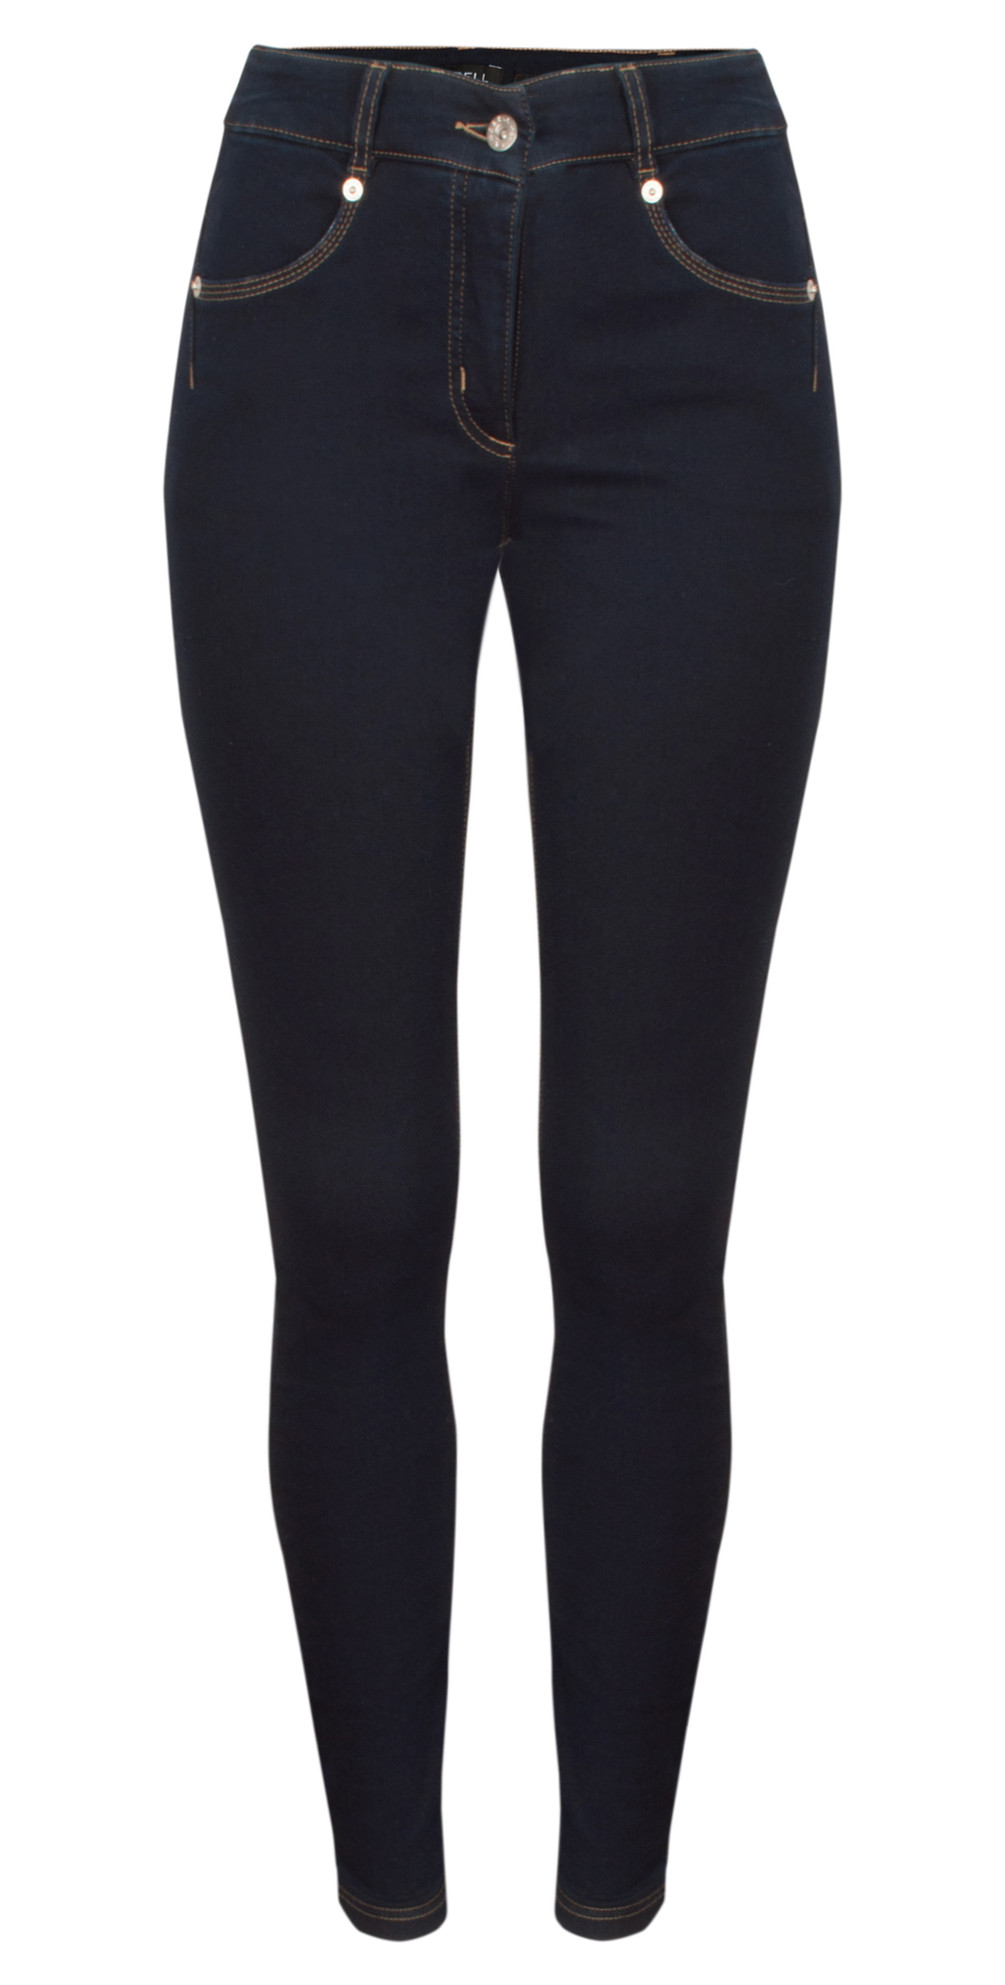 Star Power Stretch Skinny Jean main image